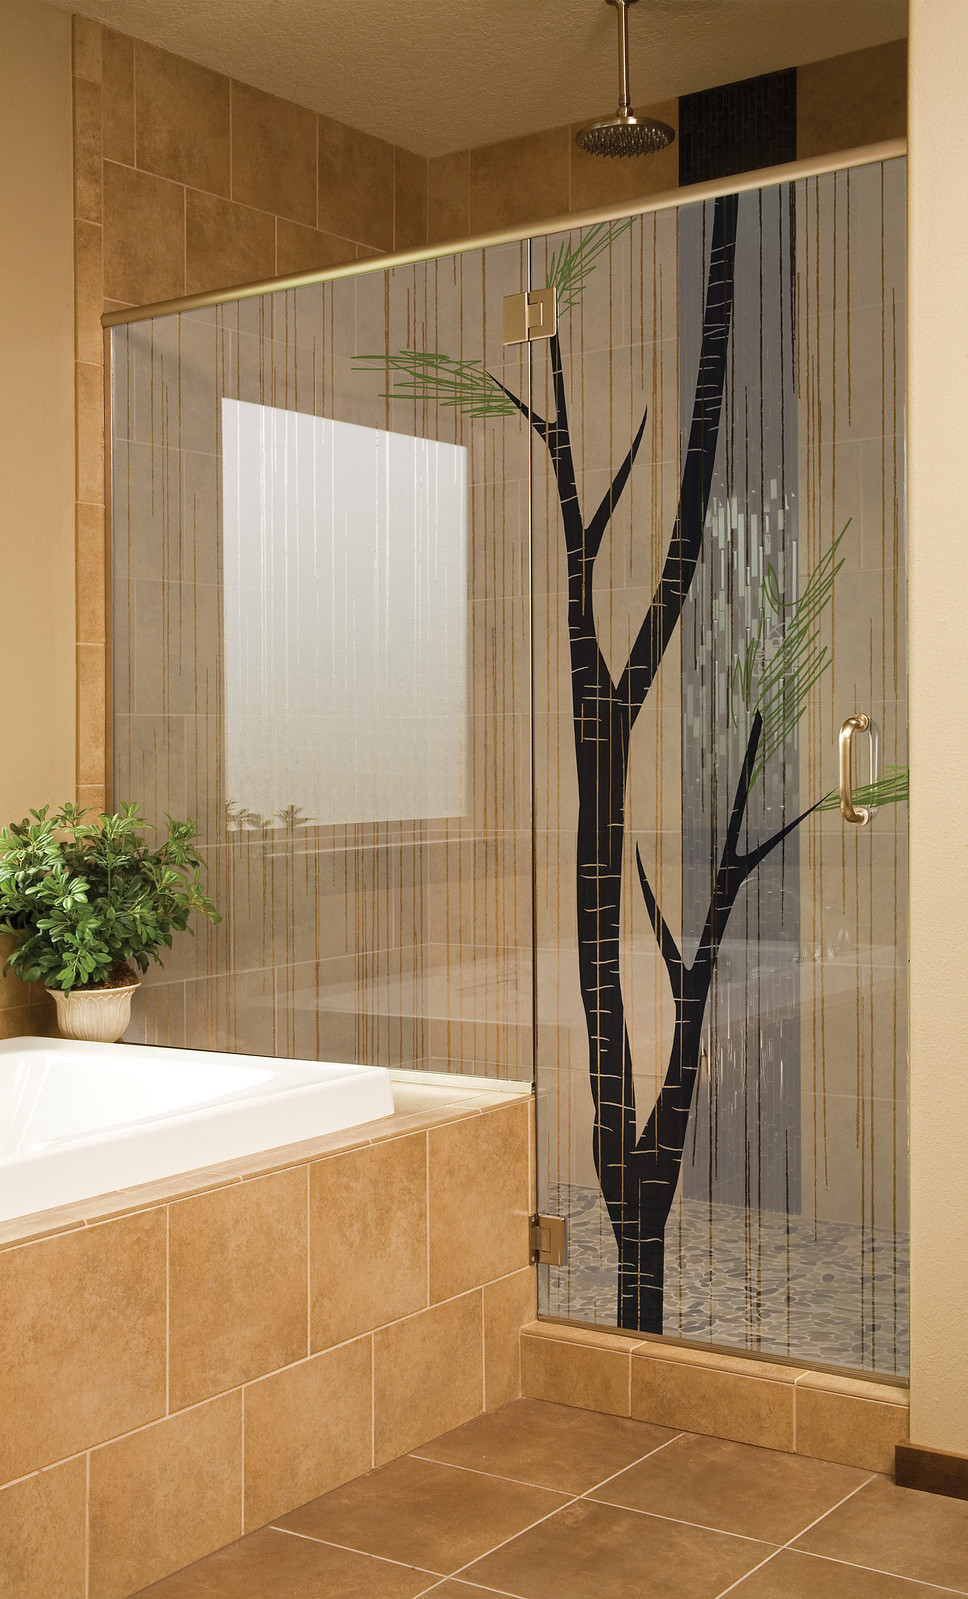 Hd glass residential showers backsplashes flickr for Hartung glass industries